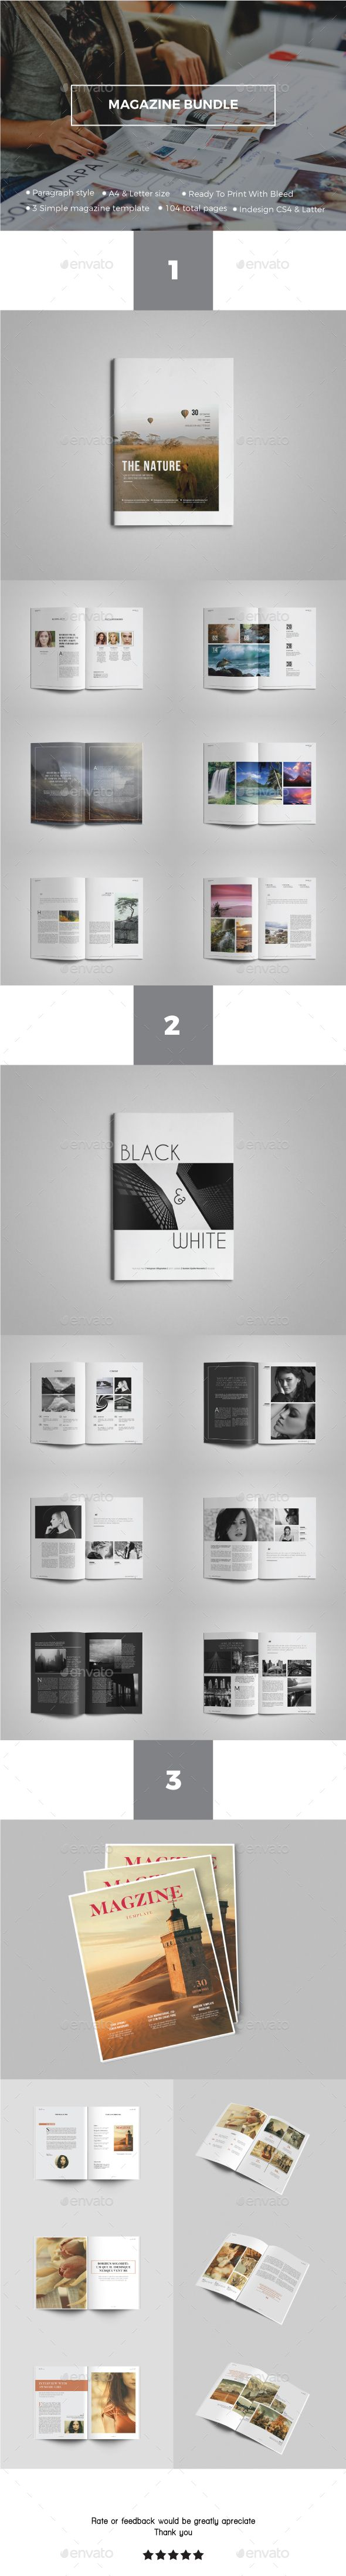 222 best Magazine Templates images on Pinterest | Brochures ...